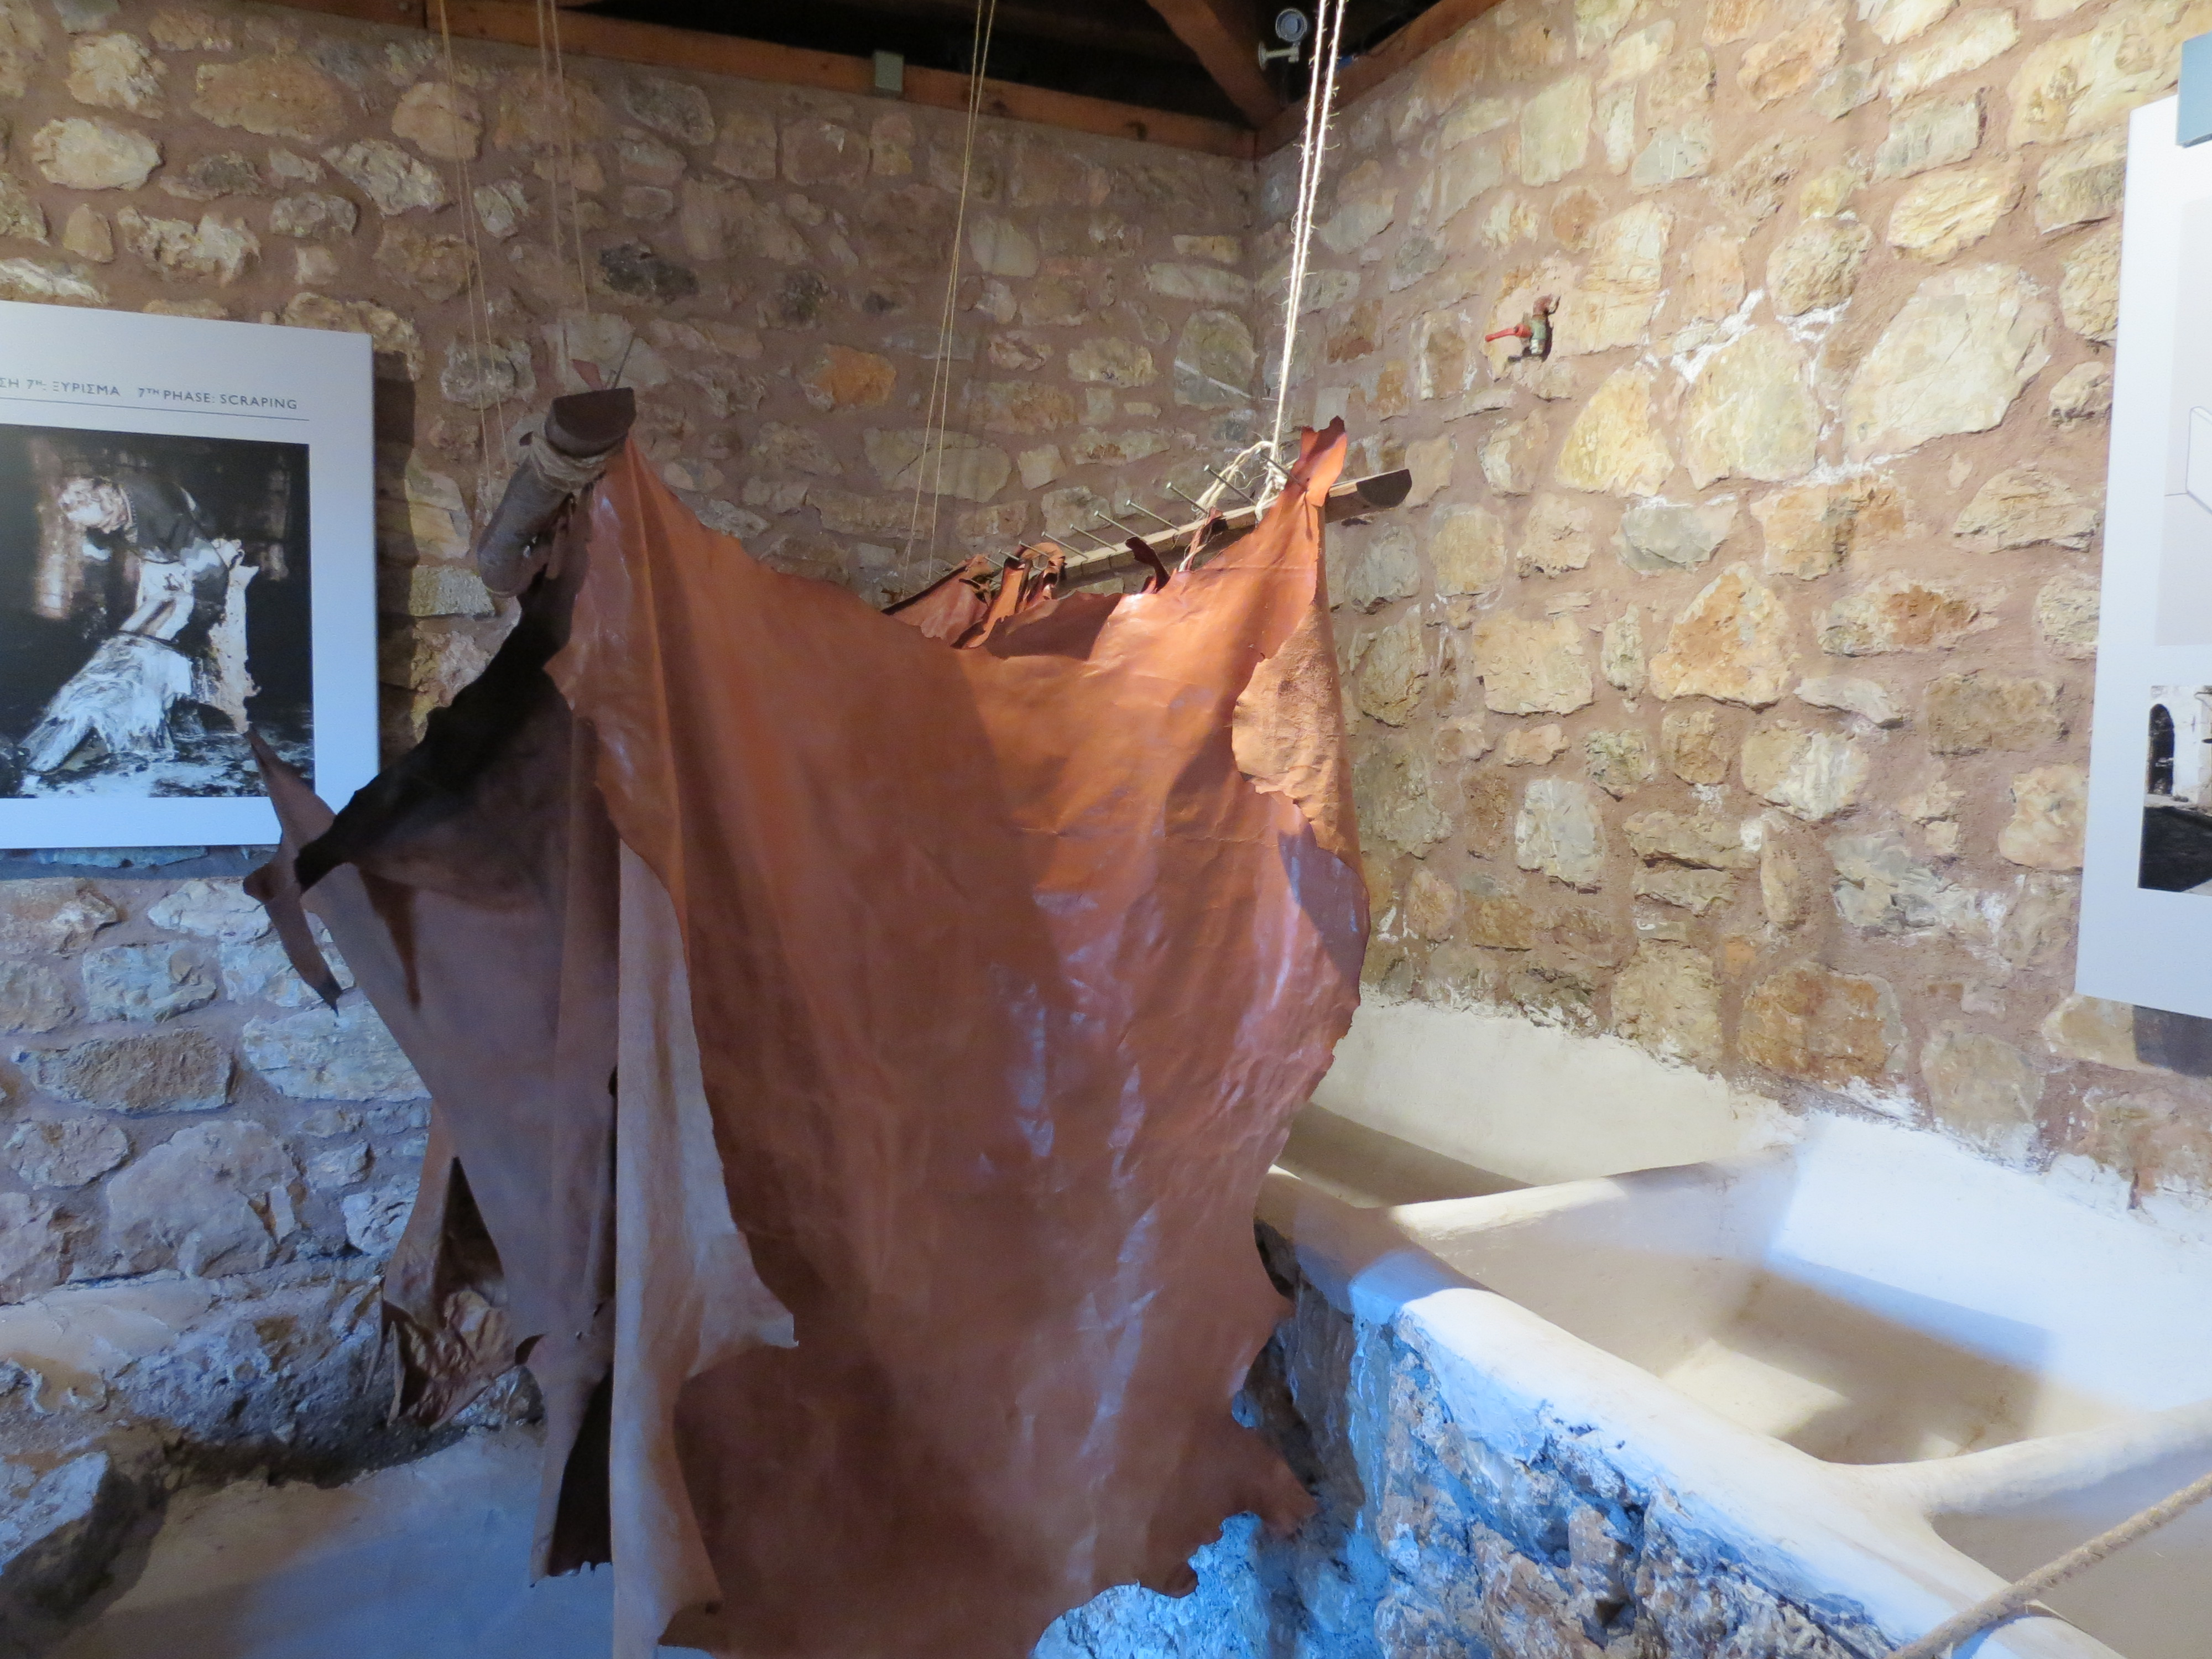 Leather tanning at dimitsana hydropower museum